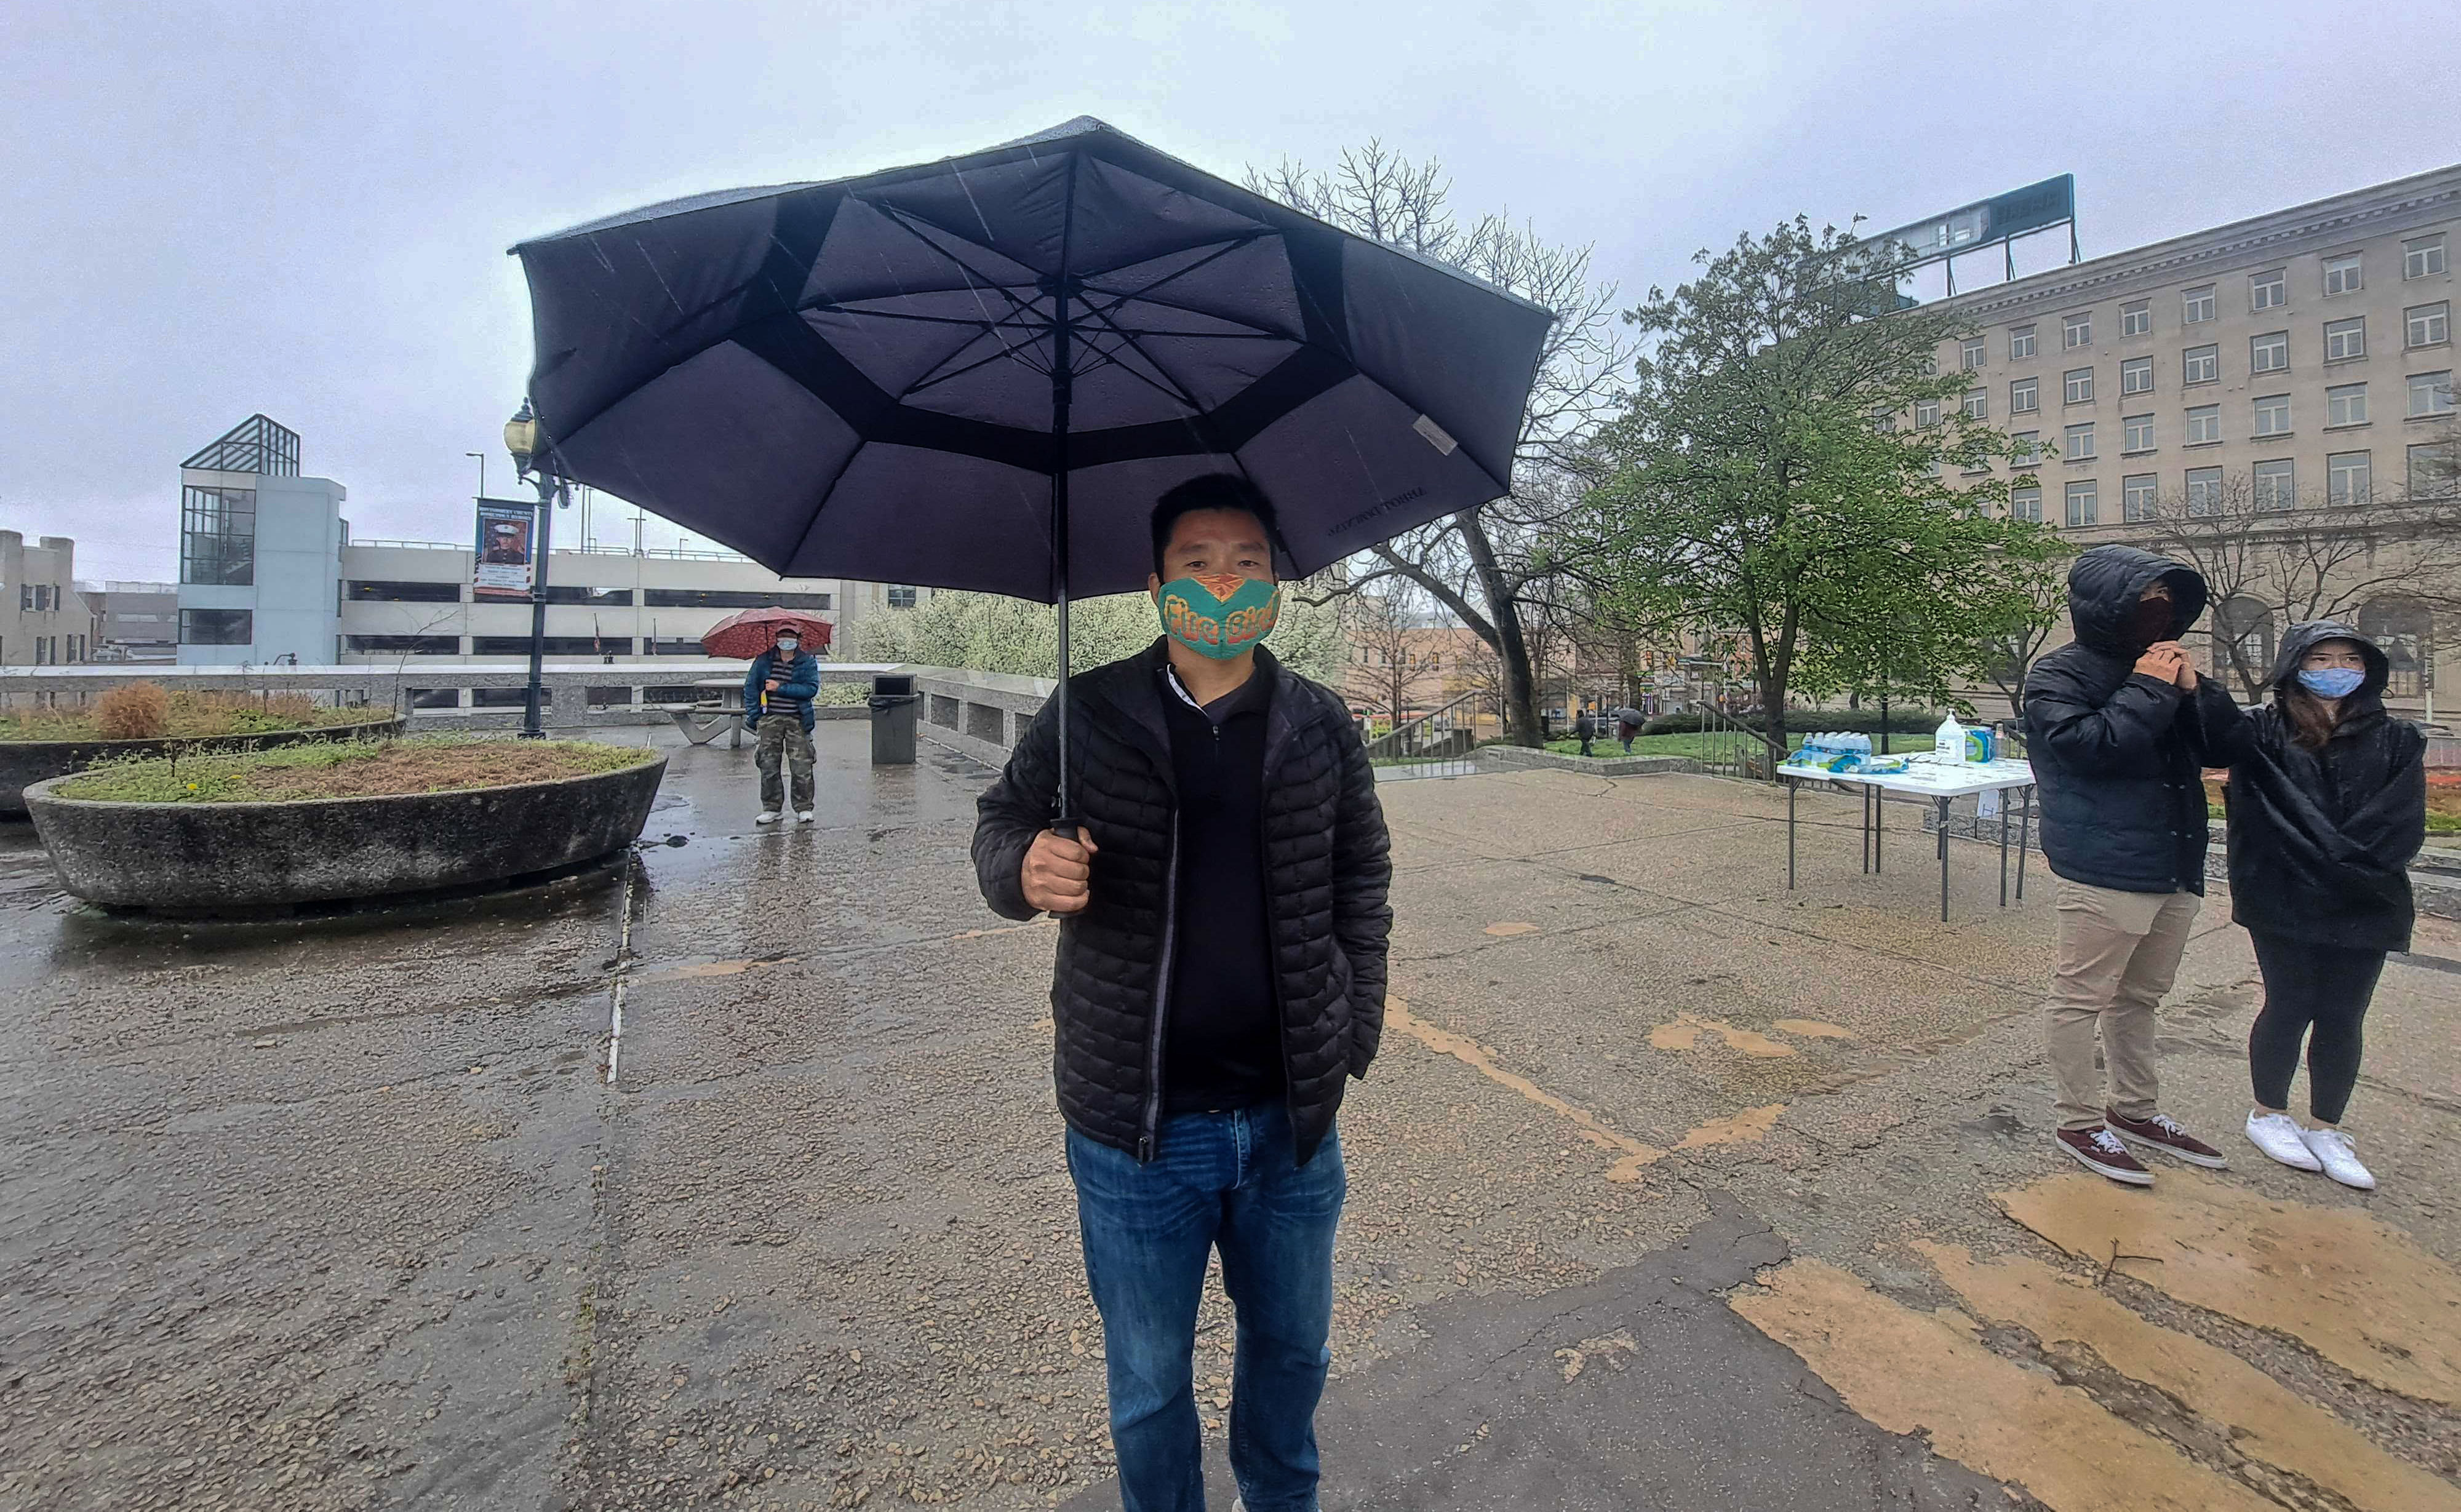 James Kim holds an umbrella while wearing a face mask